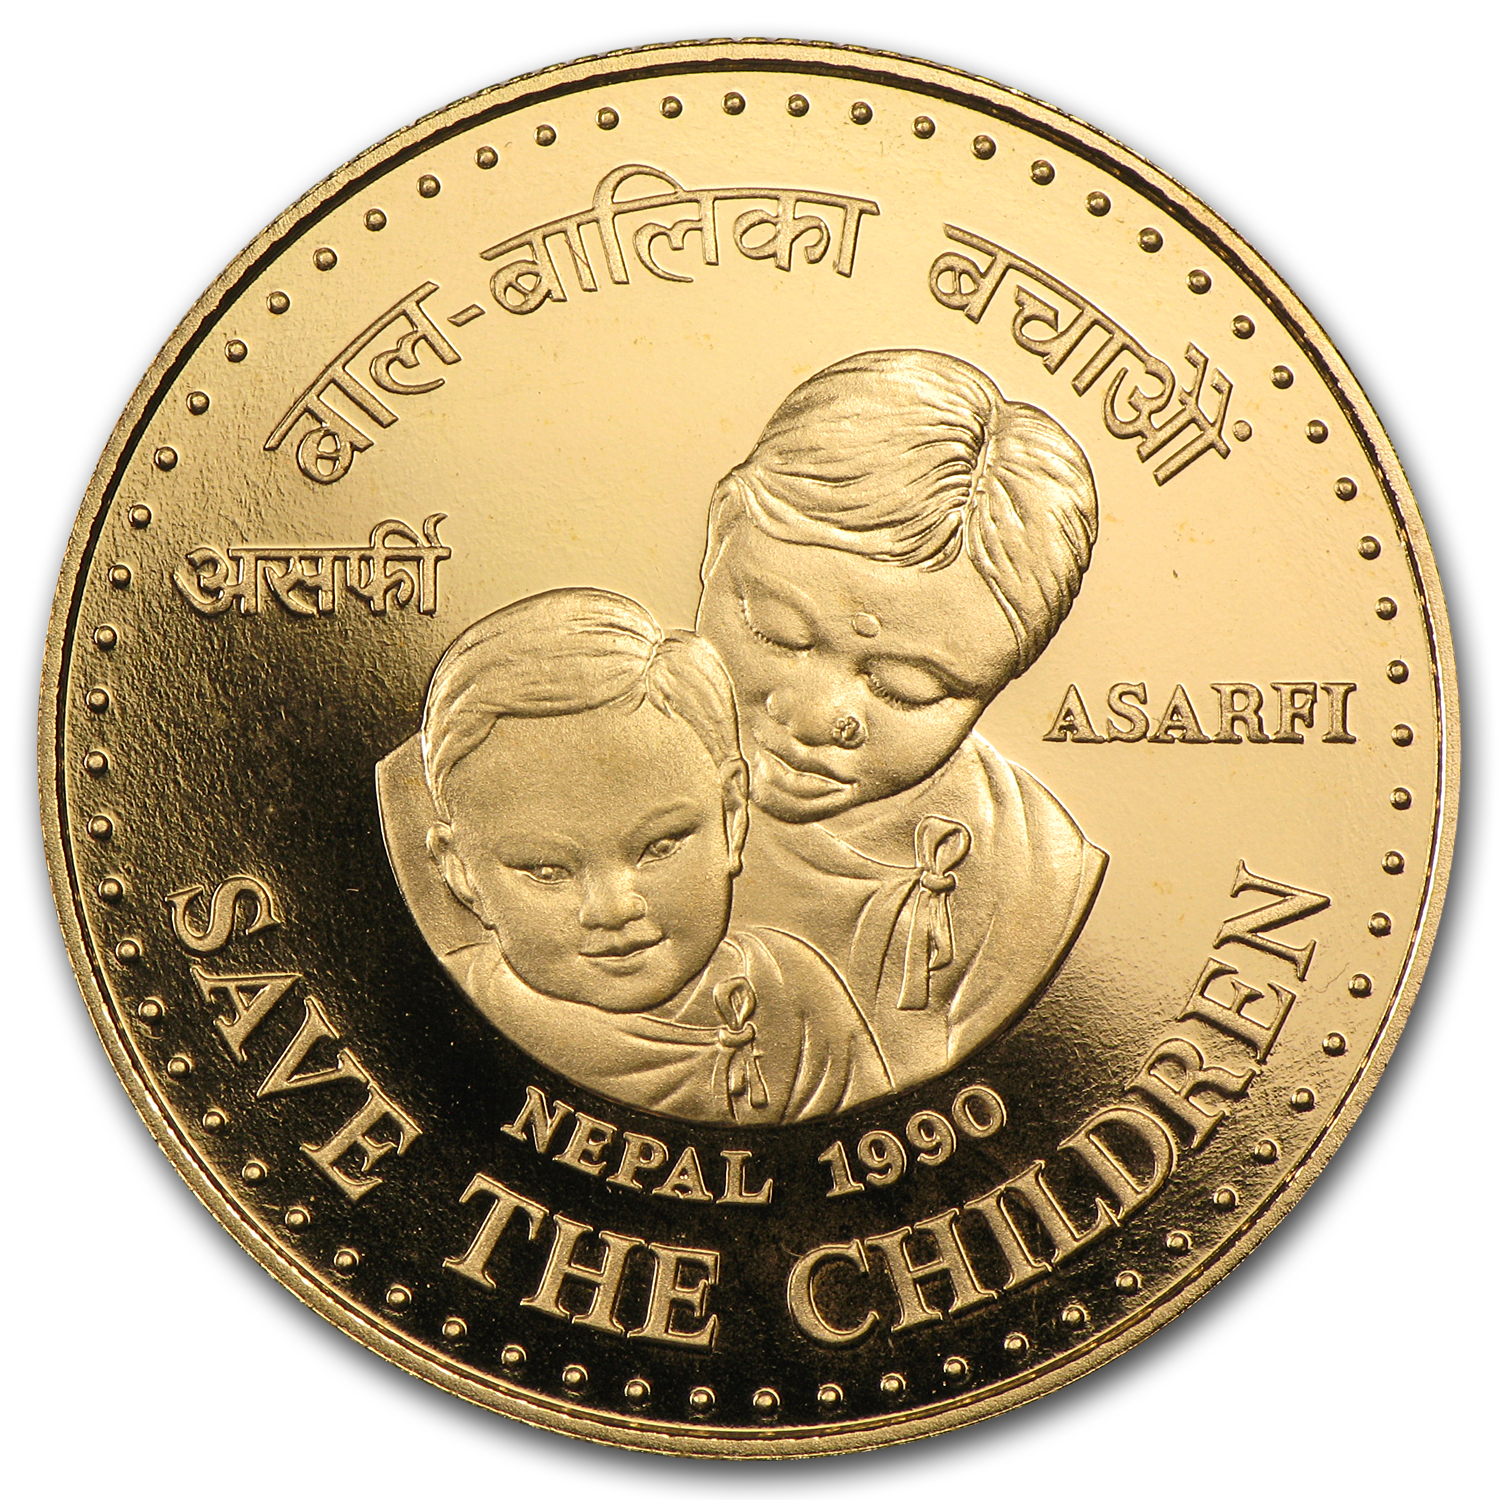 1990 Nepal Gold 1/4 Asarfi Proof